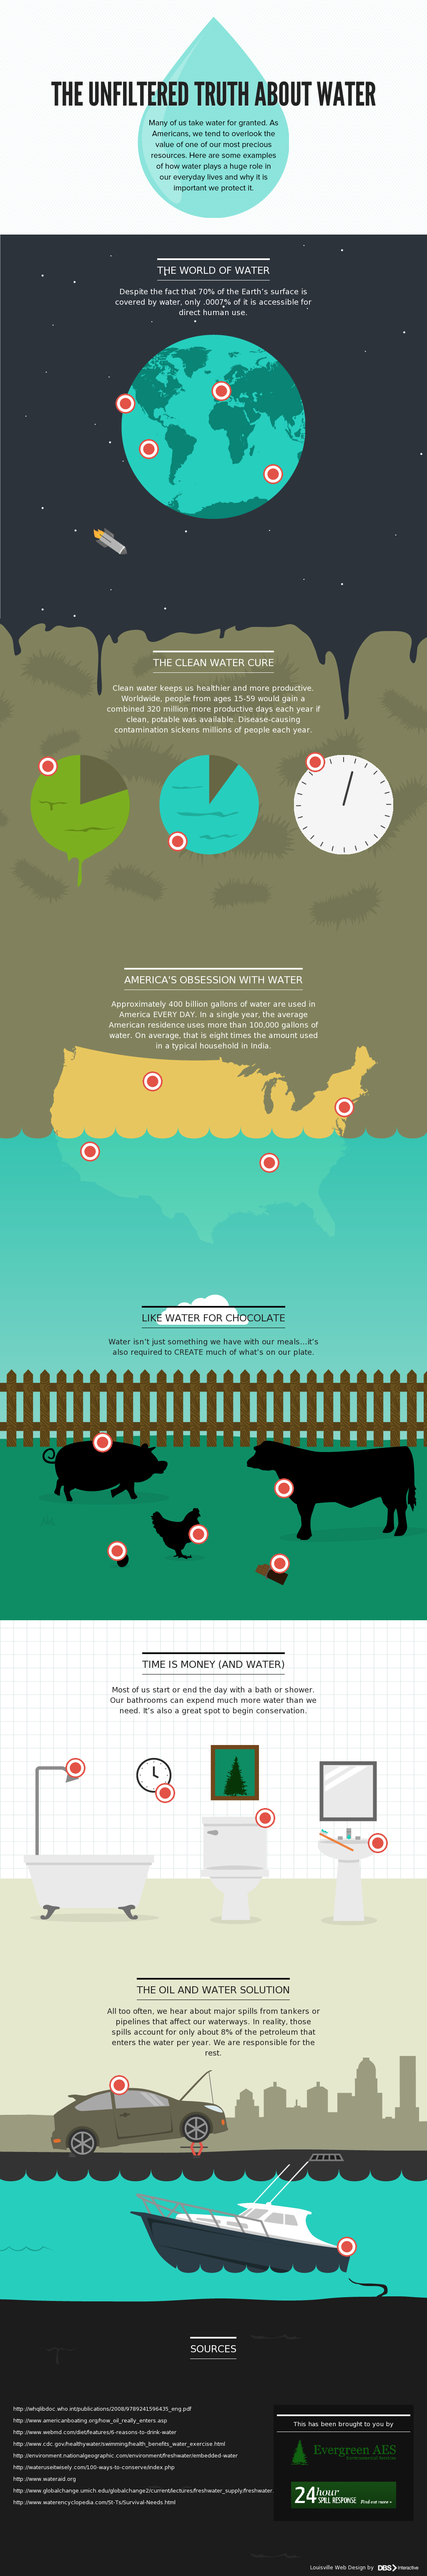 Responsible Water Usage-Infographic